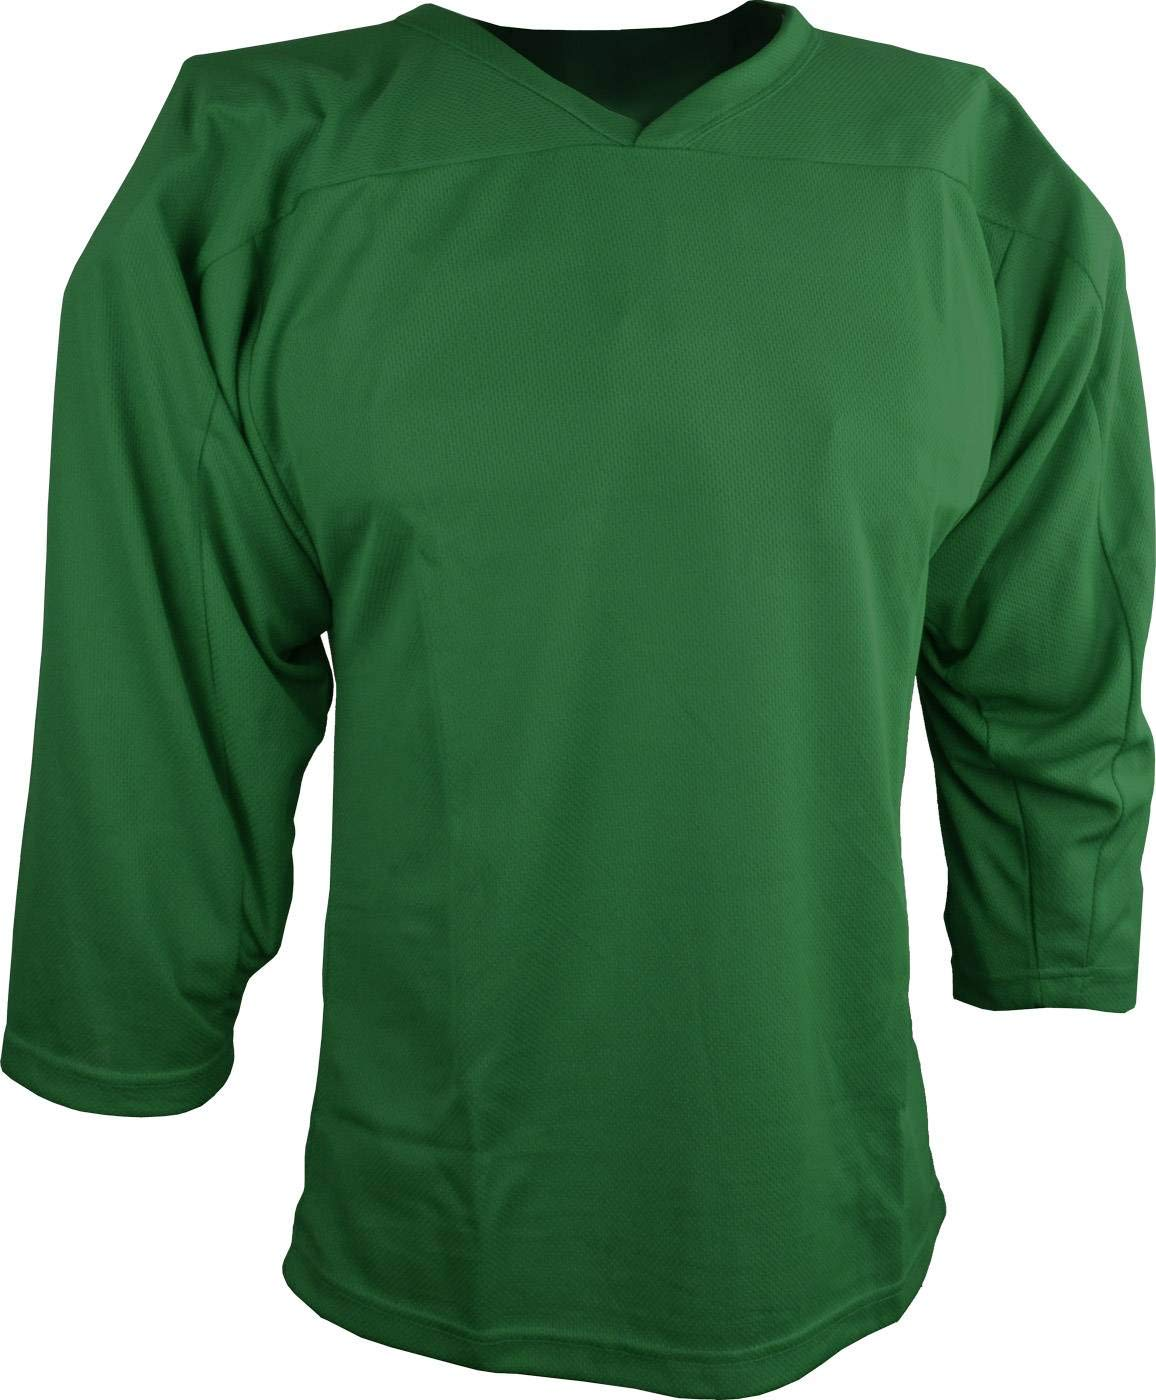 Sports Unlimited Adult Hockey Practice Jersey, Dark Green, Small